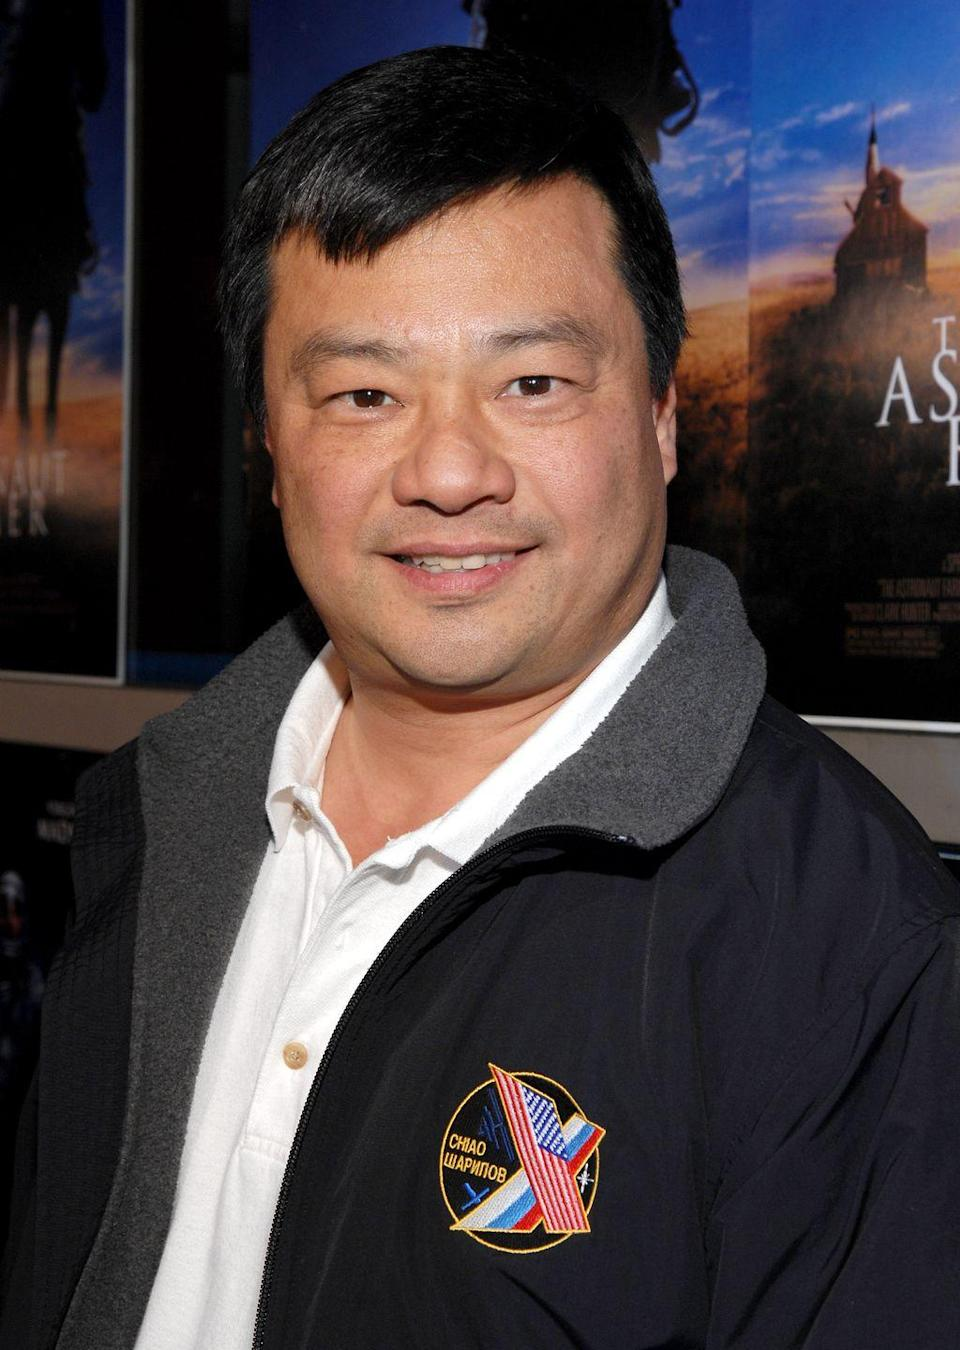 "<p>Before he was an astronaut and lived on board the International Space Station, Leroy worked at McDonald's as a 16-year-old in California's Walnut Creek—which Leroy <a href=""http://goldenopportunitybook.com/leroy-chiao-phd/"" rel=""nofollow noopener"" target=""_blank"" data-ylk=""slk:told Teets"" class=""link rapid-noclick-resp"">told Teets</a> for <em><a href=""https://www.amazon.com/Golden-Opportunity-Remarkable-Careers-McDonalds/dp/1604332794/?tag=syn-yahoo-20&ascsubtag=%5Bartid%7C2140.g.27361202%5Bsrc%7Cyahoo-us"" rel=""nofollow noopener"" target=""_blank"" data-ylk=""slk:Golden Opportunity: Remarkable Careers That Began at McDonald's"" class=""link rapid-noclick-resp"">Golden Opportunity: Remarkable Careers That Began at McDonald's</a></em>: ""My experiences at McDonald's have translated into almost anything I've done.""</p>"